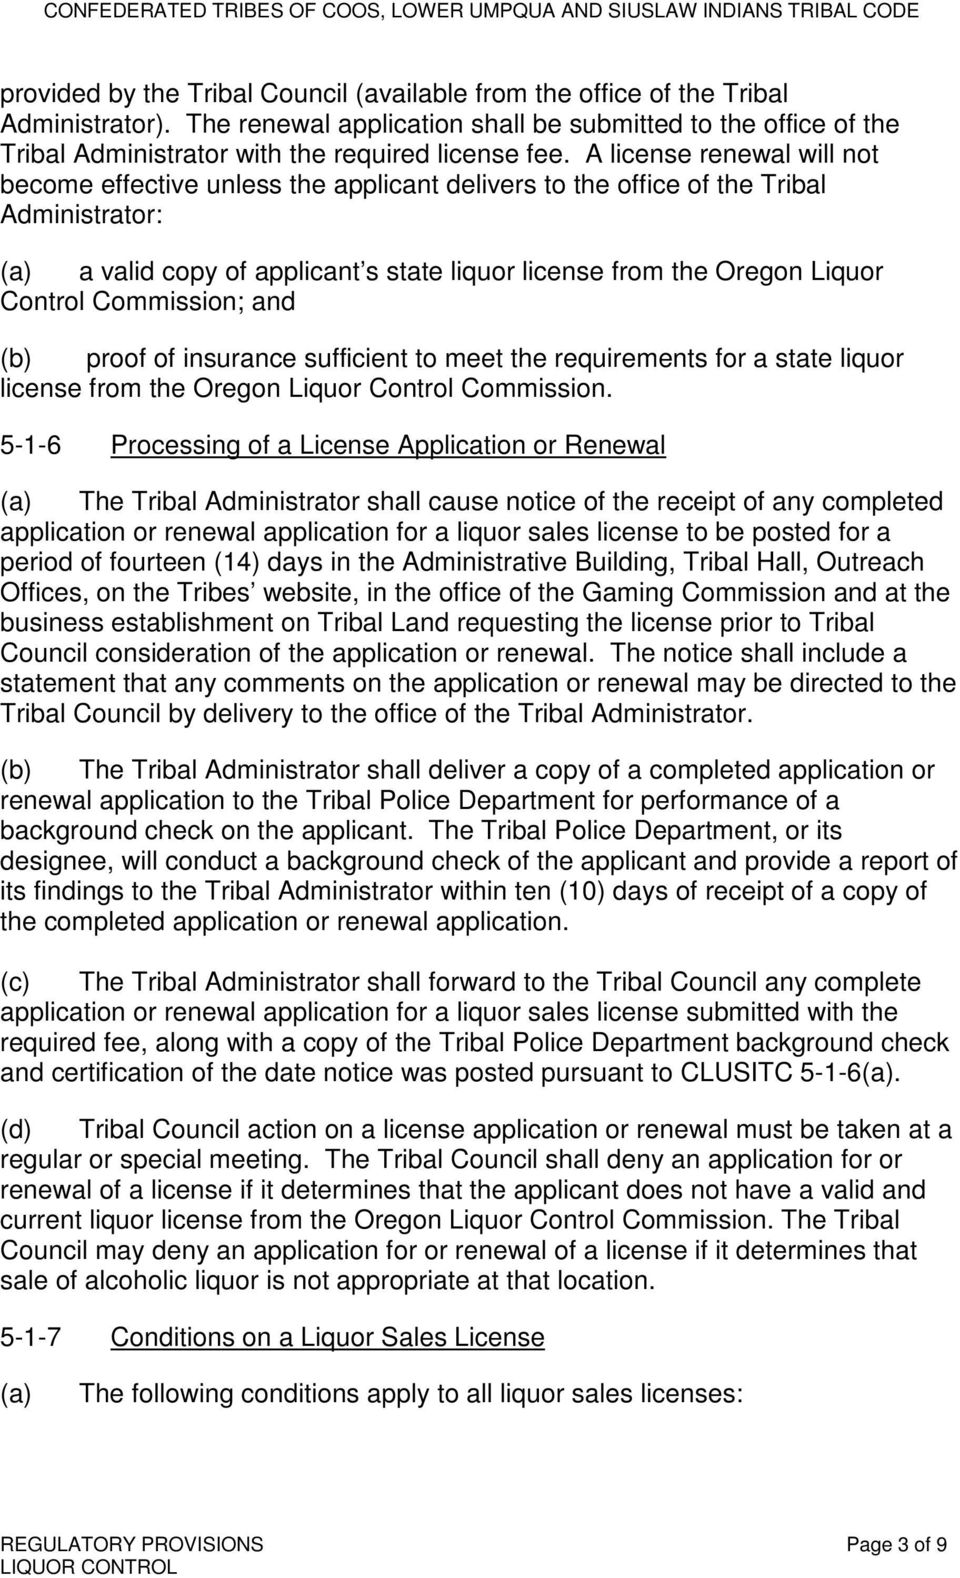 A license renewal will not become effective unless the applicant delivers to the office of the Tribal Administrator: (a) a valid copy of applicant s state liquor license from the Oregon Liquor